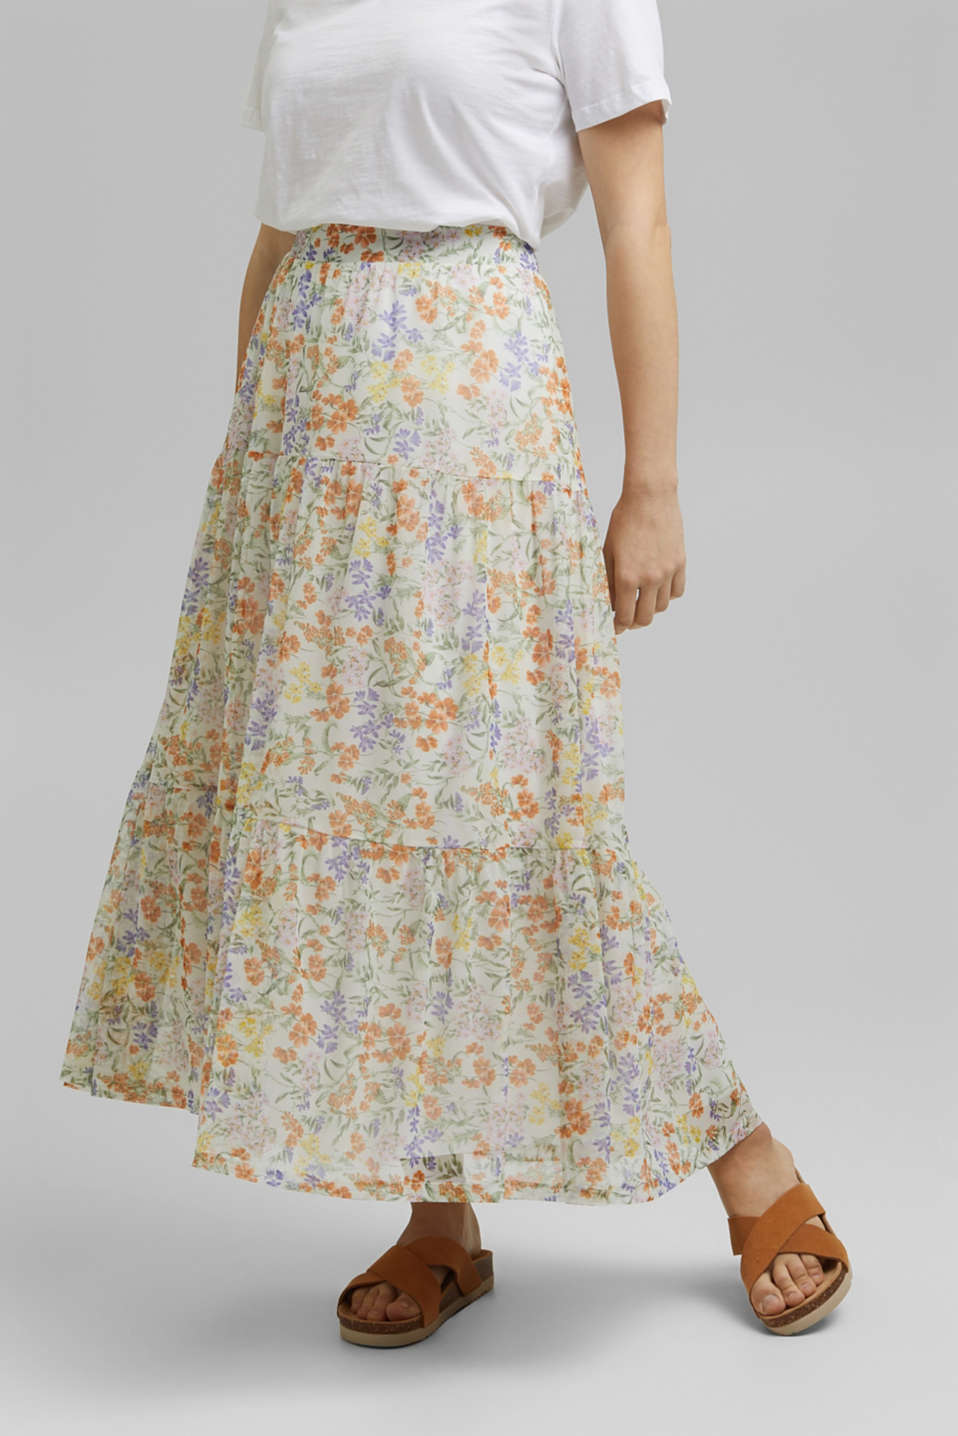 Esprit - CURVY maxi skirt with frills and a print